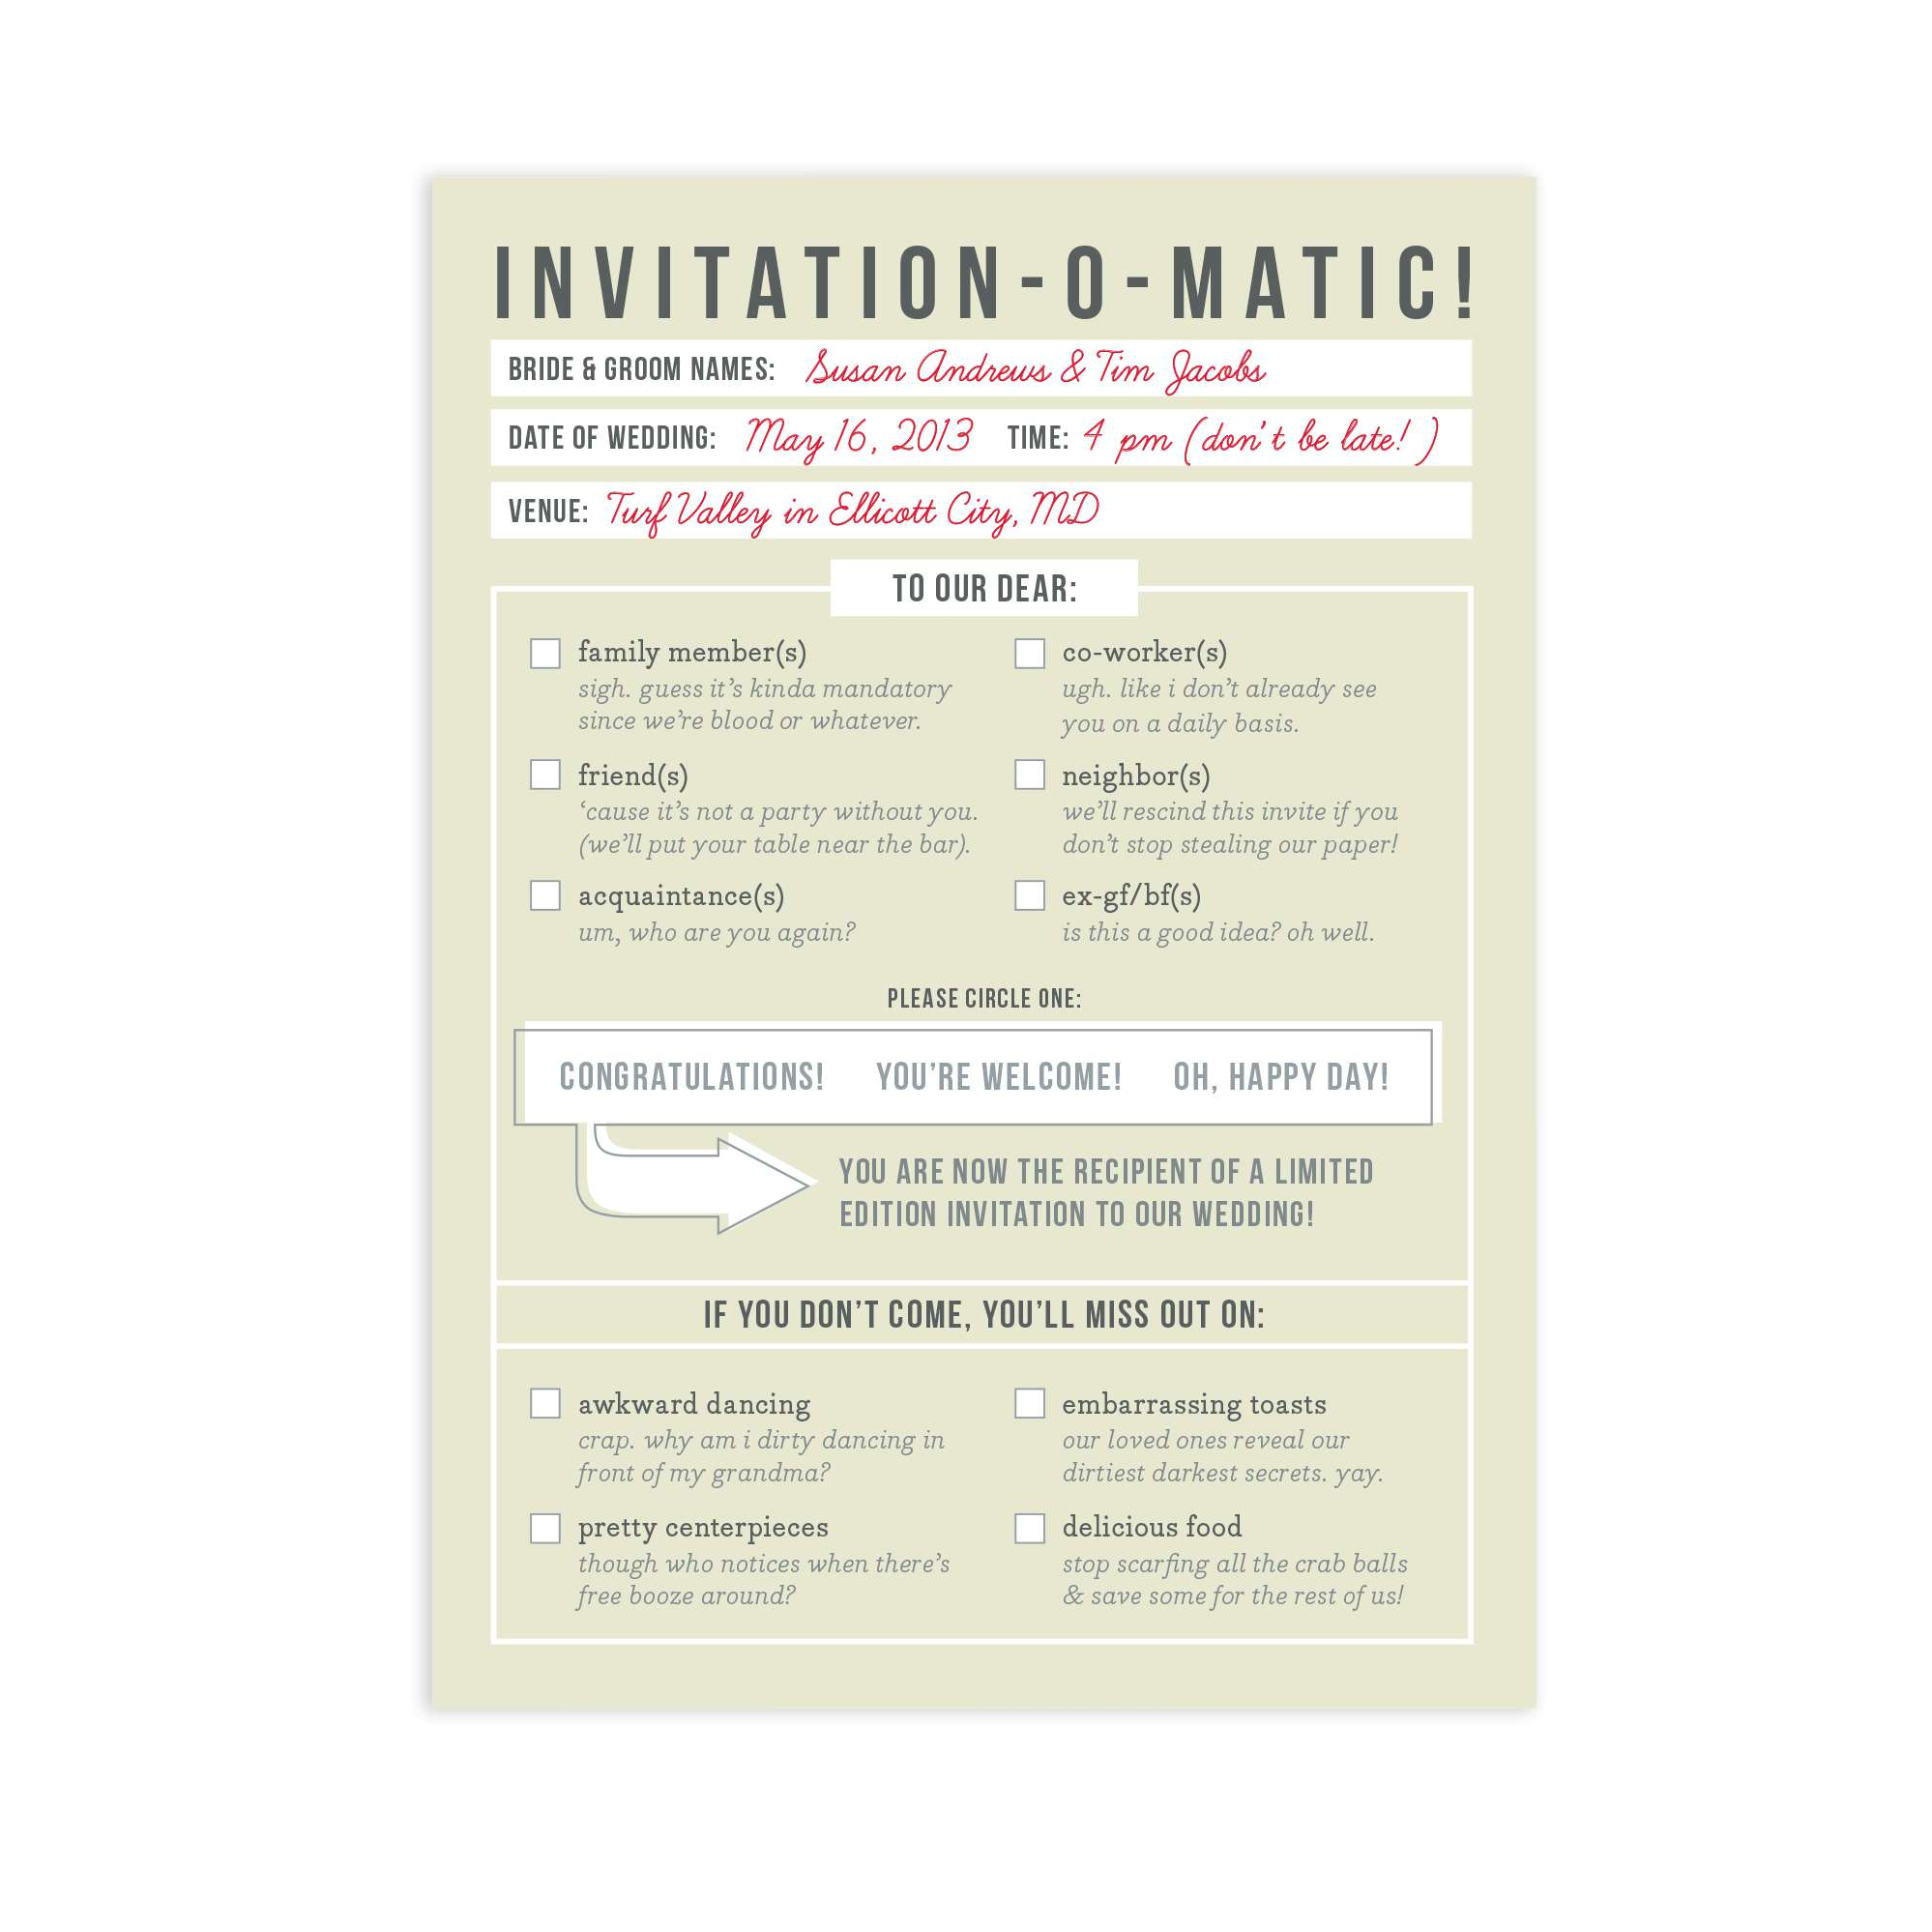 Wedding Invitation Funny: 13 Funny Wedding Invitations Perfect For Every Sense Of Humor